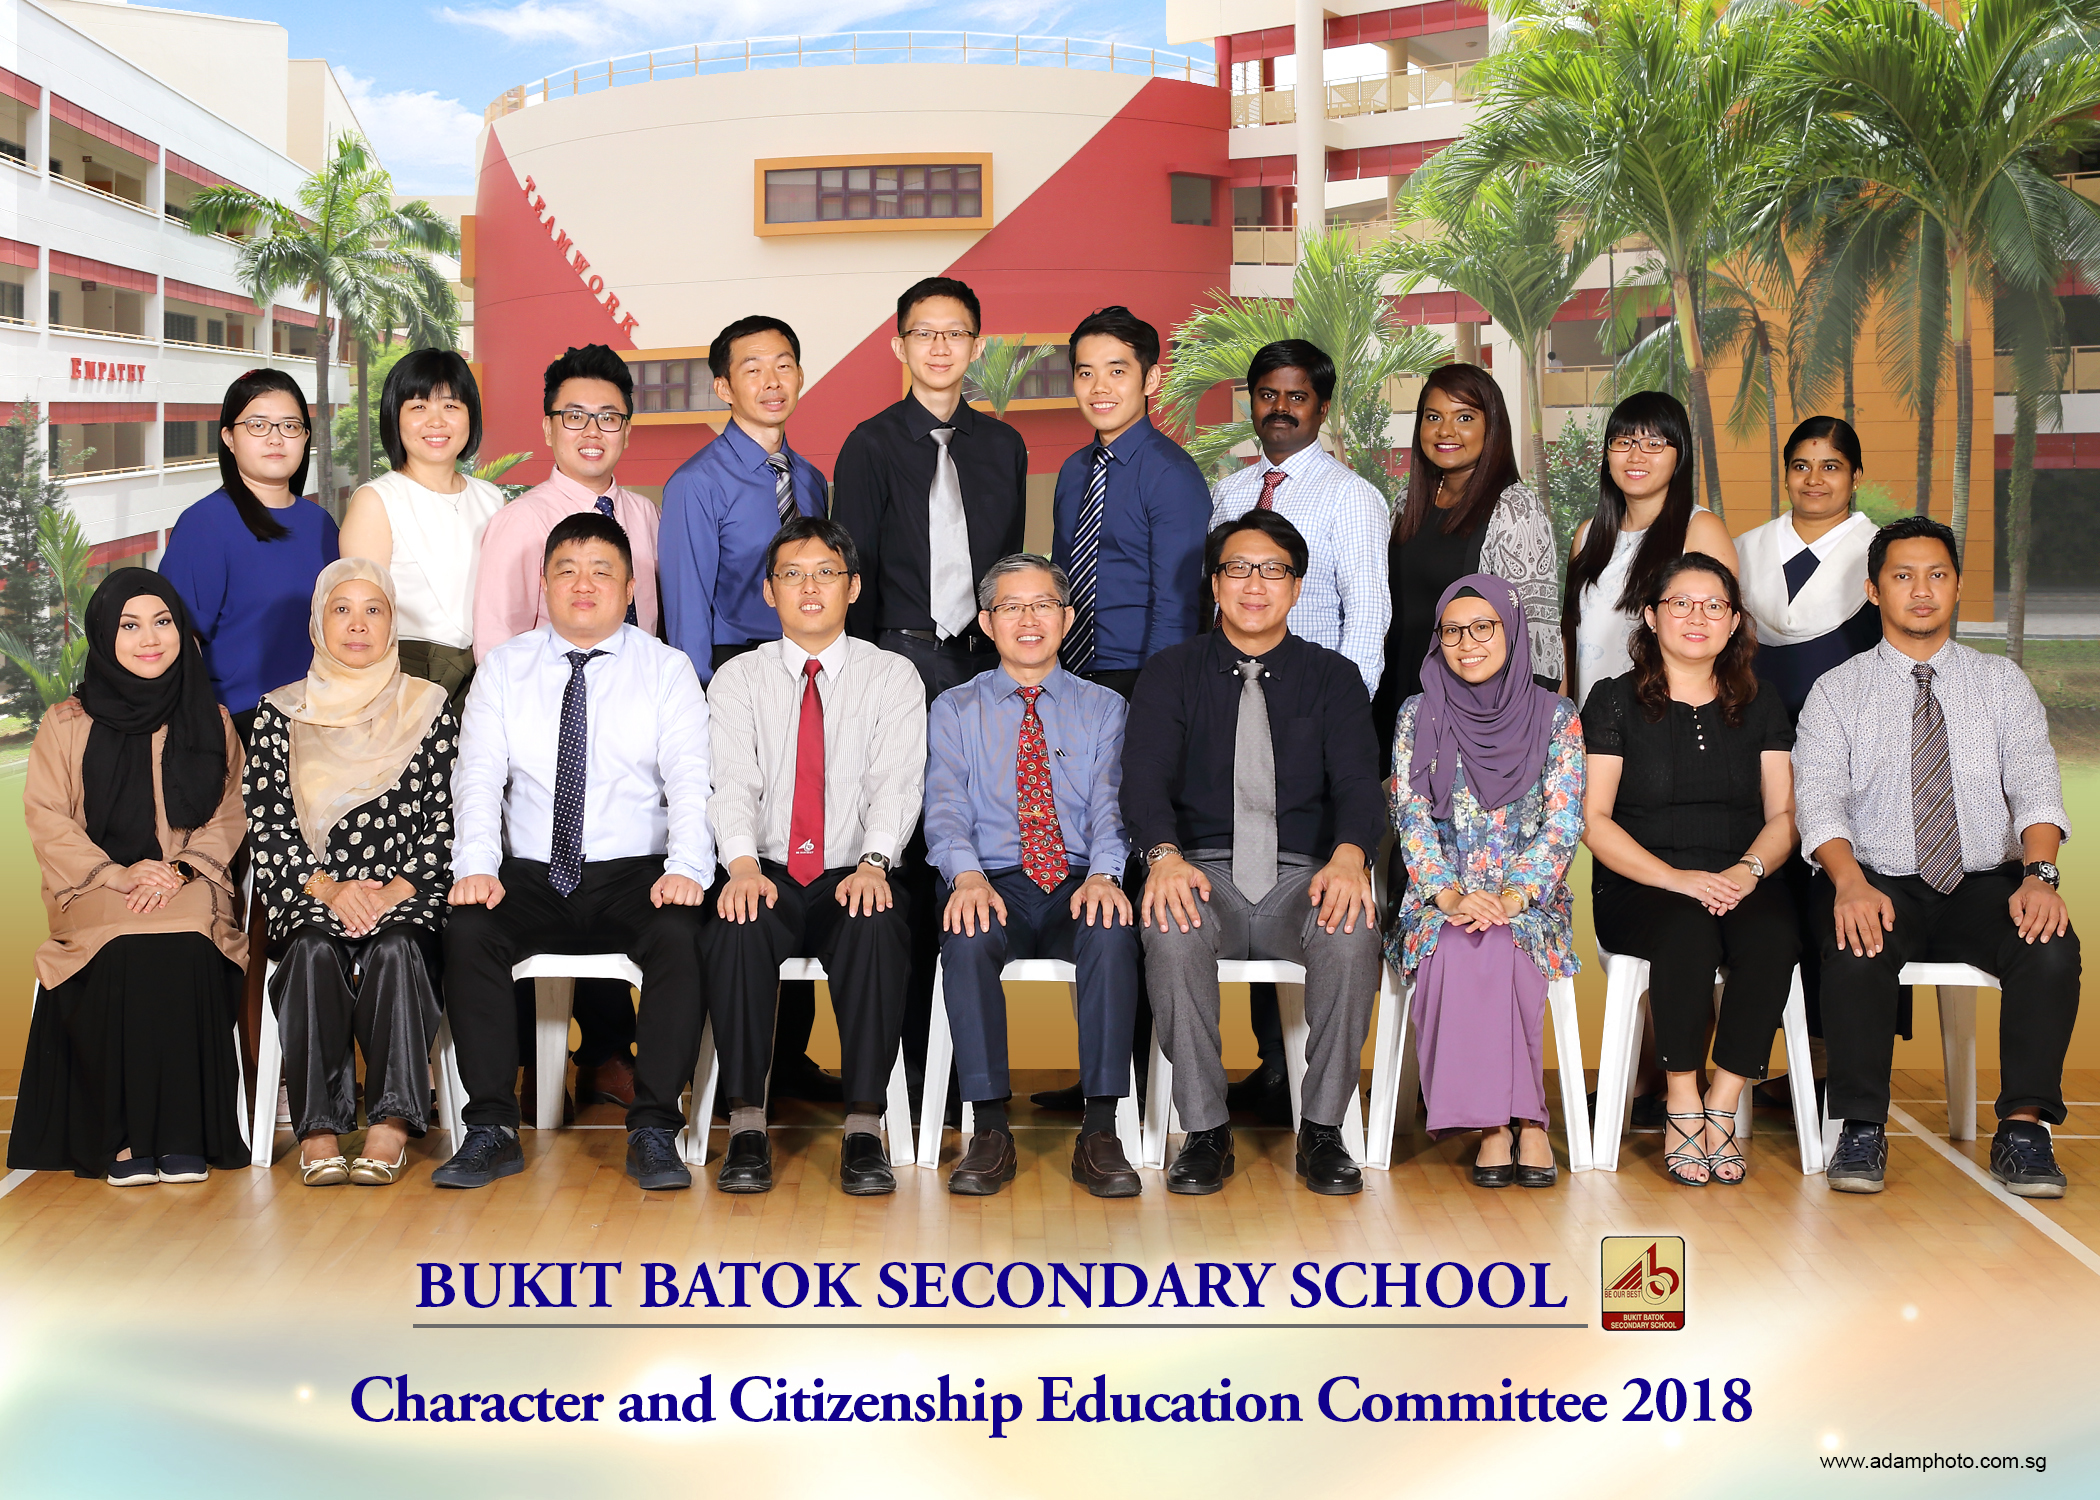 character and citizenship education committee 2.jpg